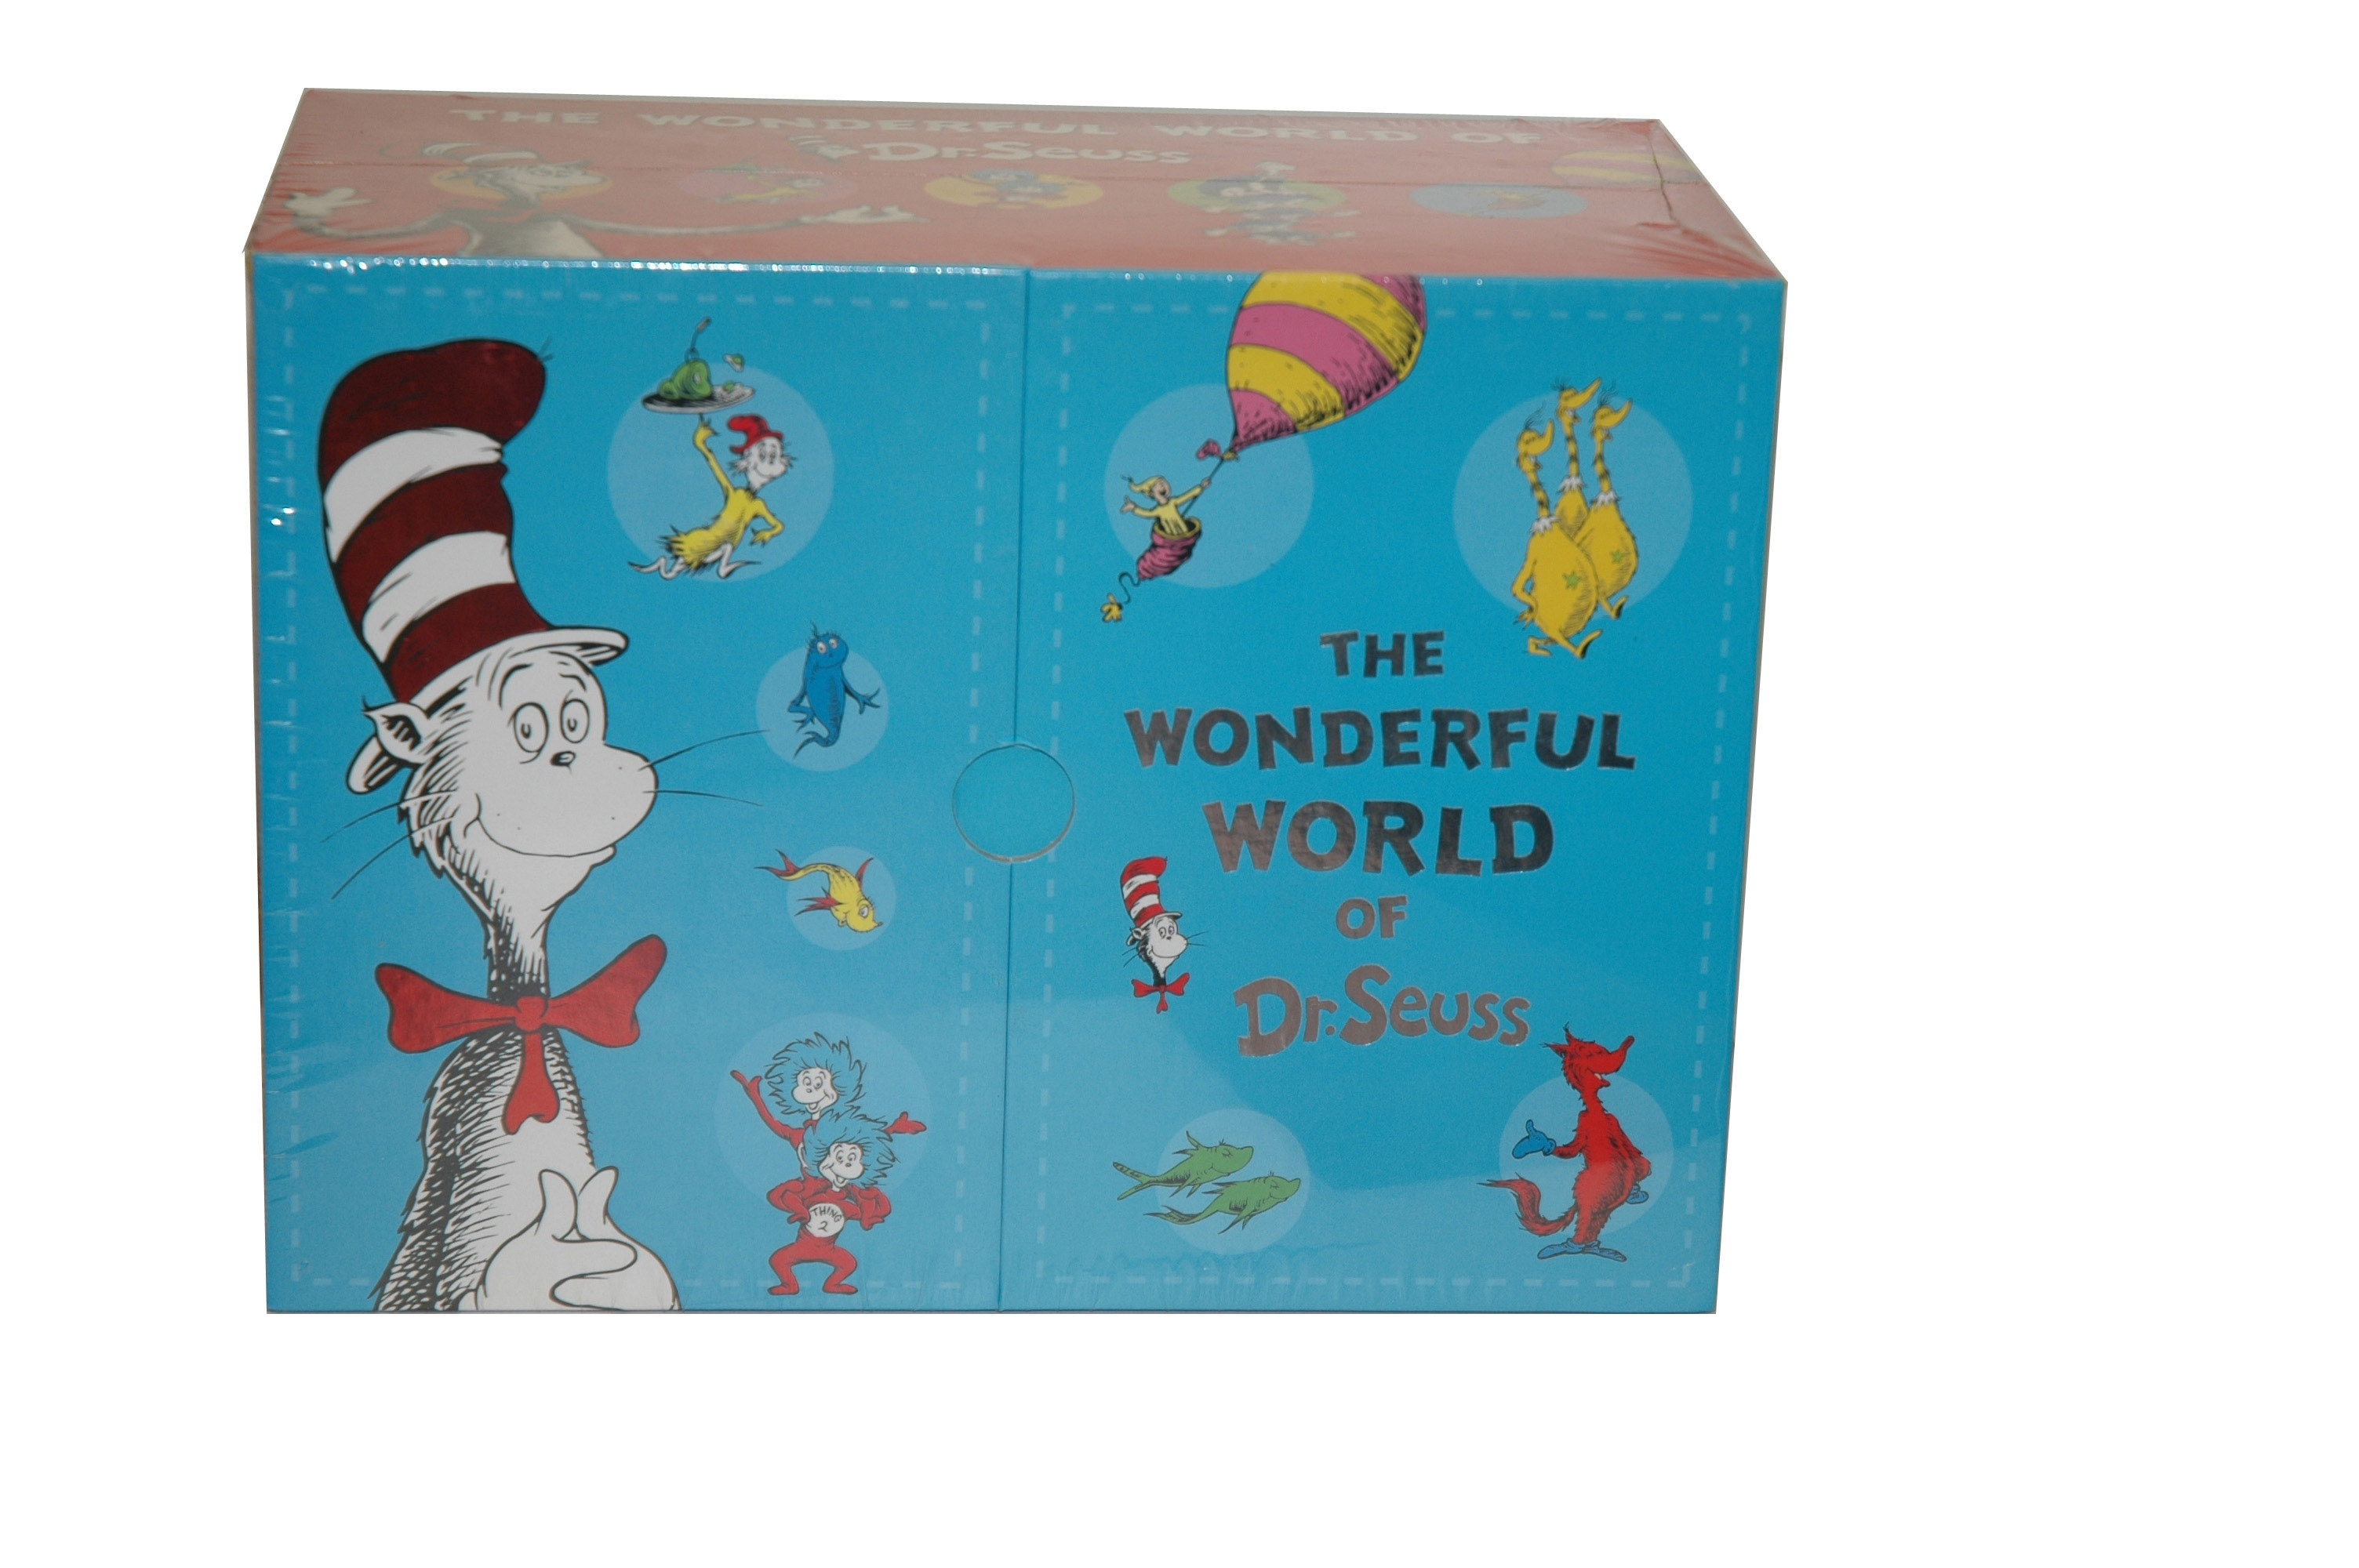 The Wonderful World of Dr Seuss (Hardcover)